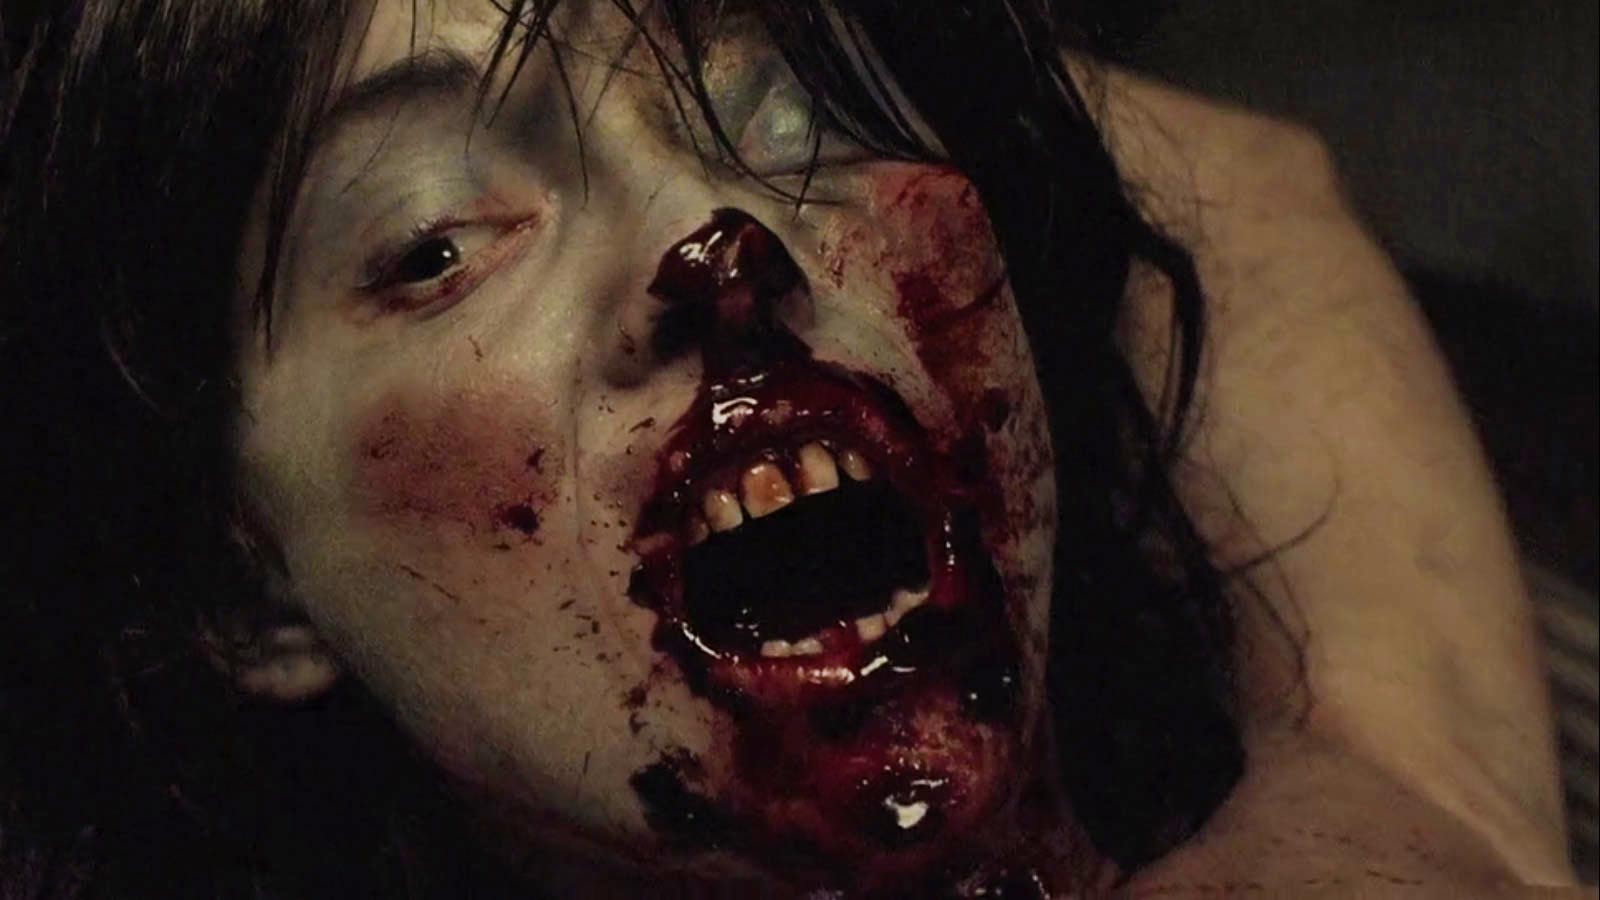 Dead Girls Movie Dead Girl 2008 Unrated – a